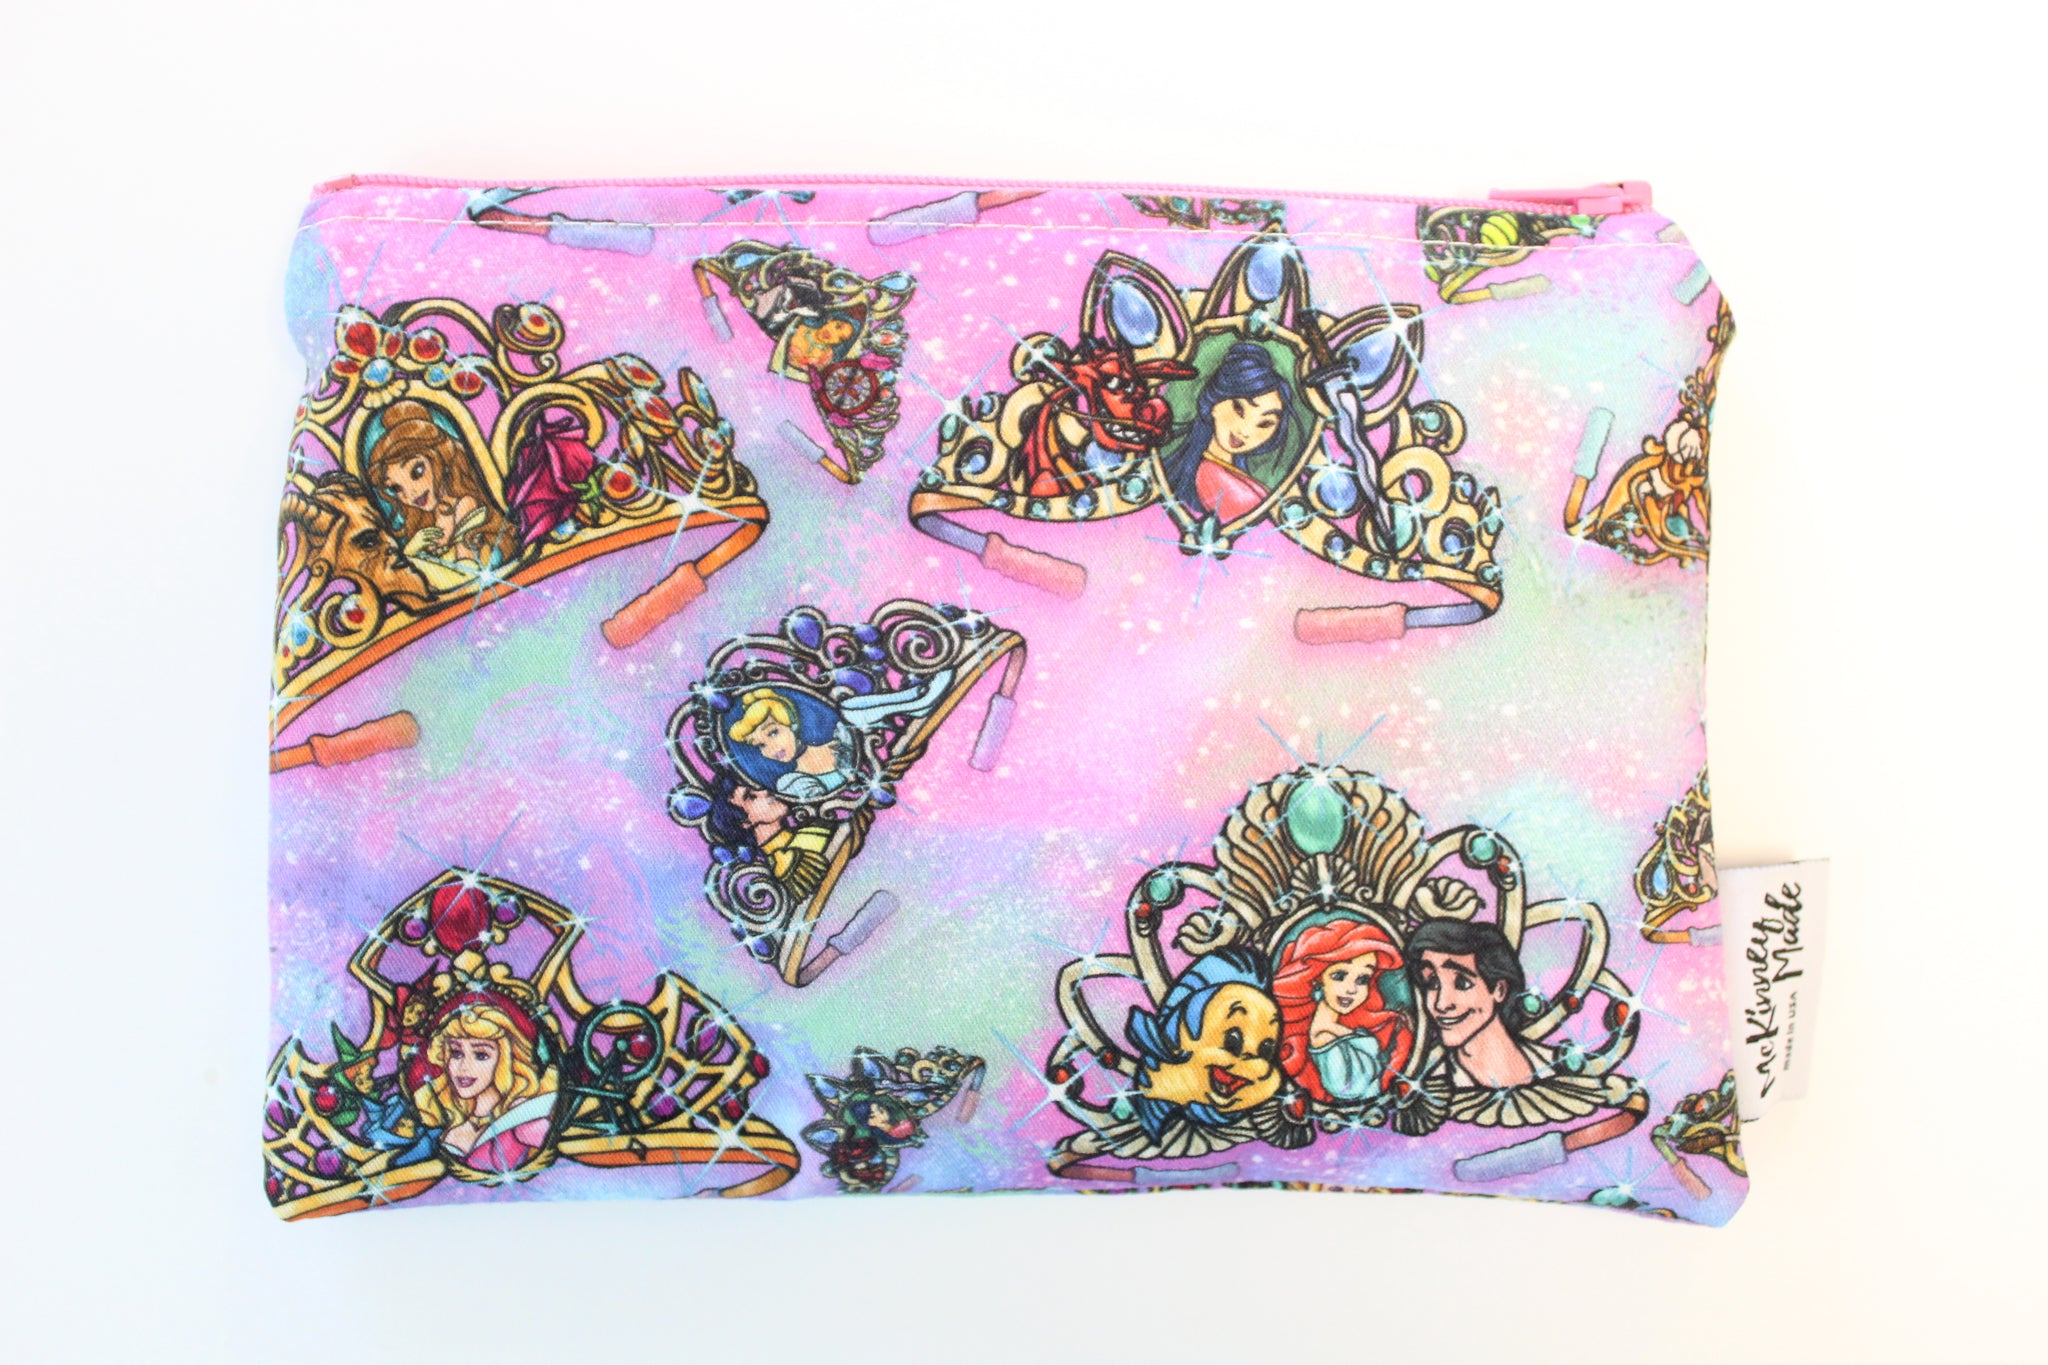 Princesses Crowns, Reusable Snack Bags